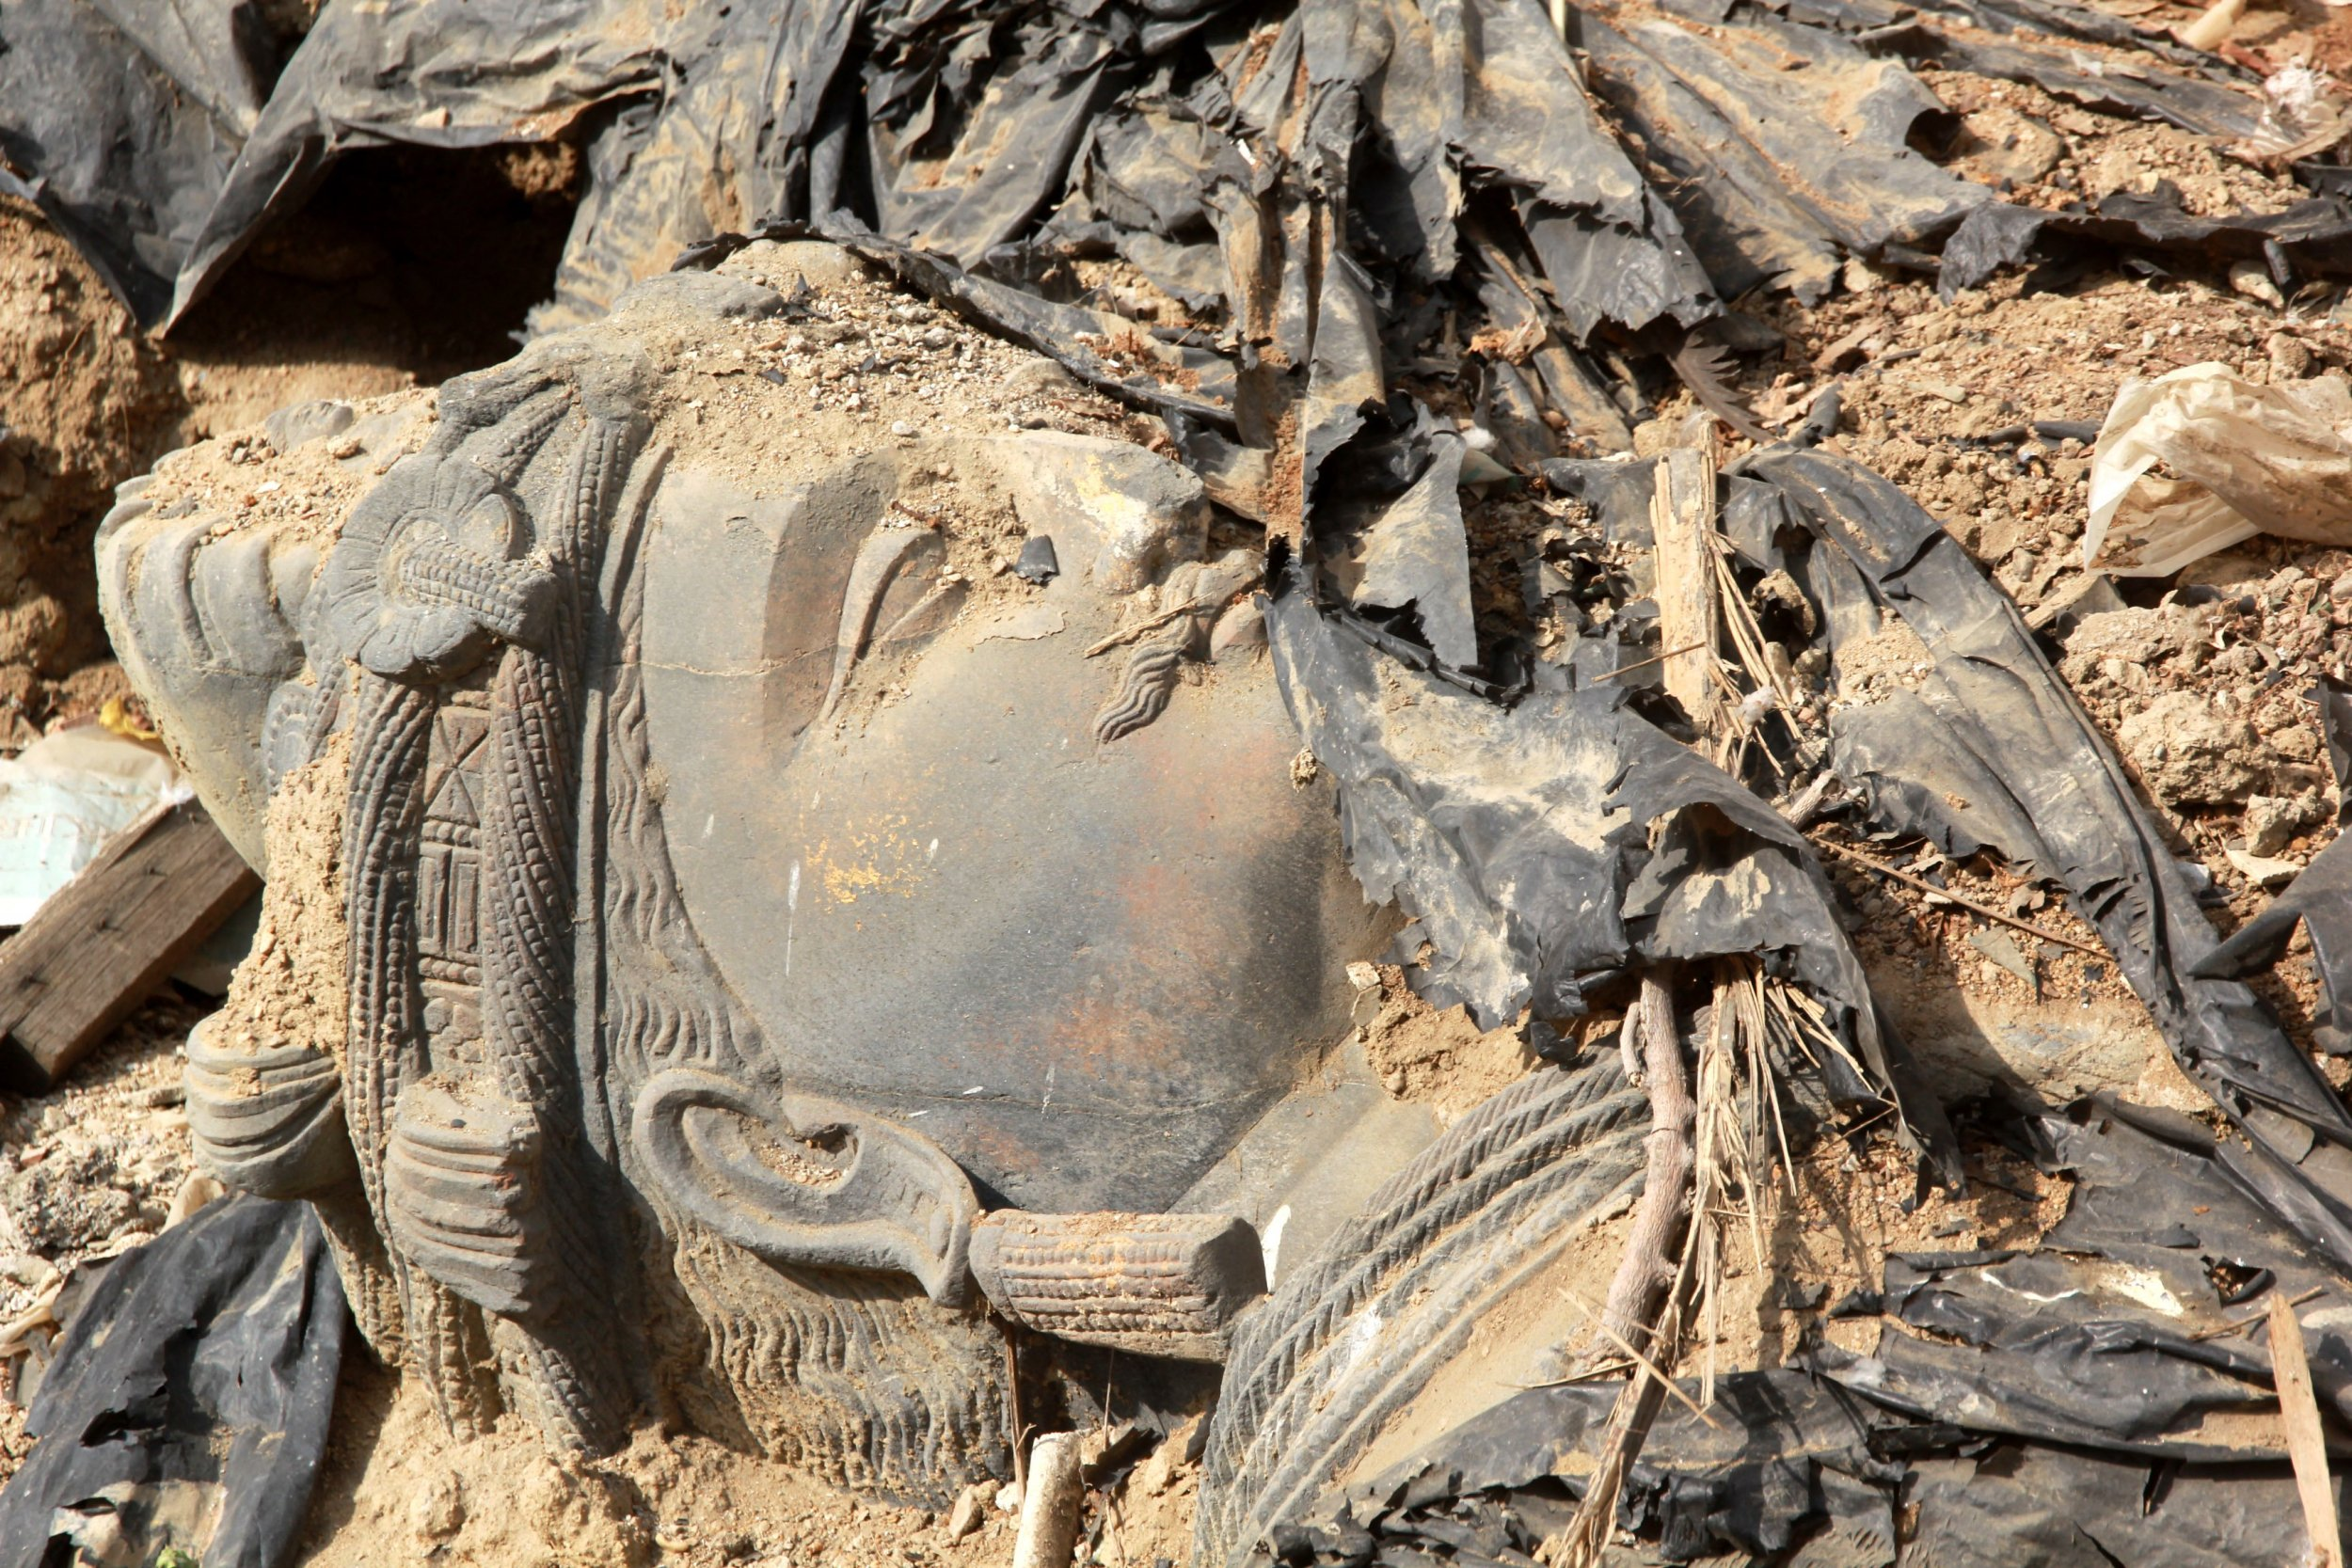 Pakistan: Ancient Buddha Statues Saved From Smugglers. Museum Then Dump Them in the Trash